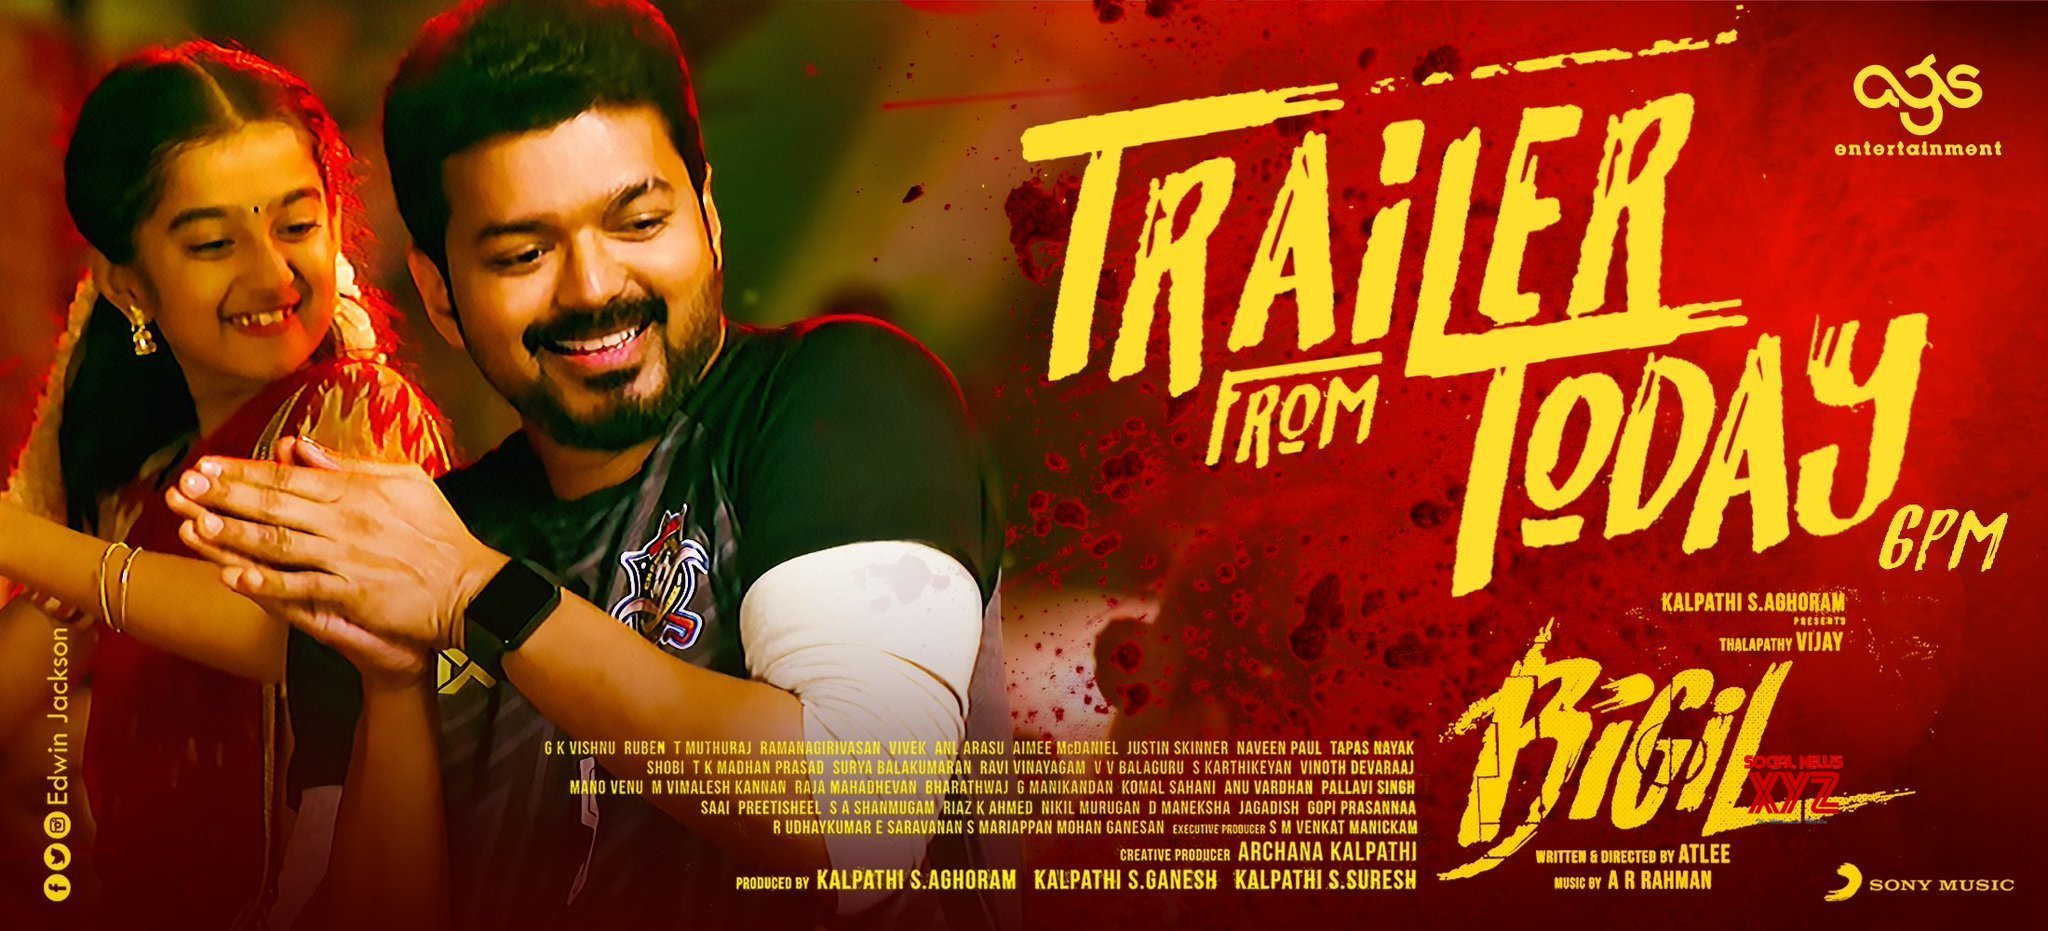 Thalapathy Vijay's Bigil Trailer From Today Poster